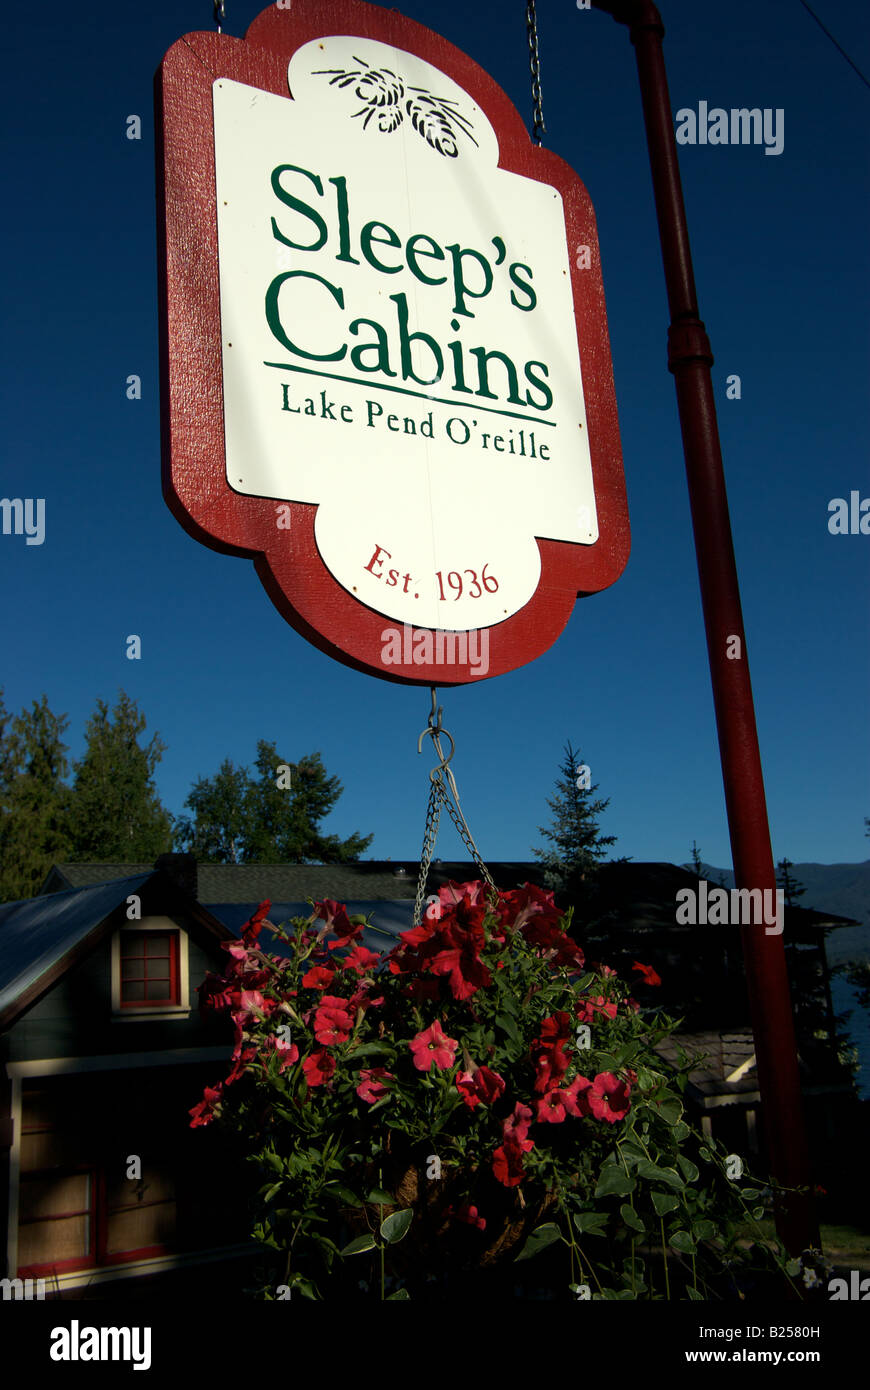 Motel sign in Sandpoint Idaho - Stock Image